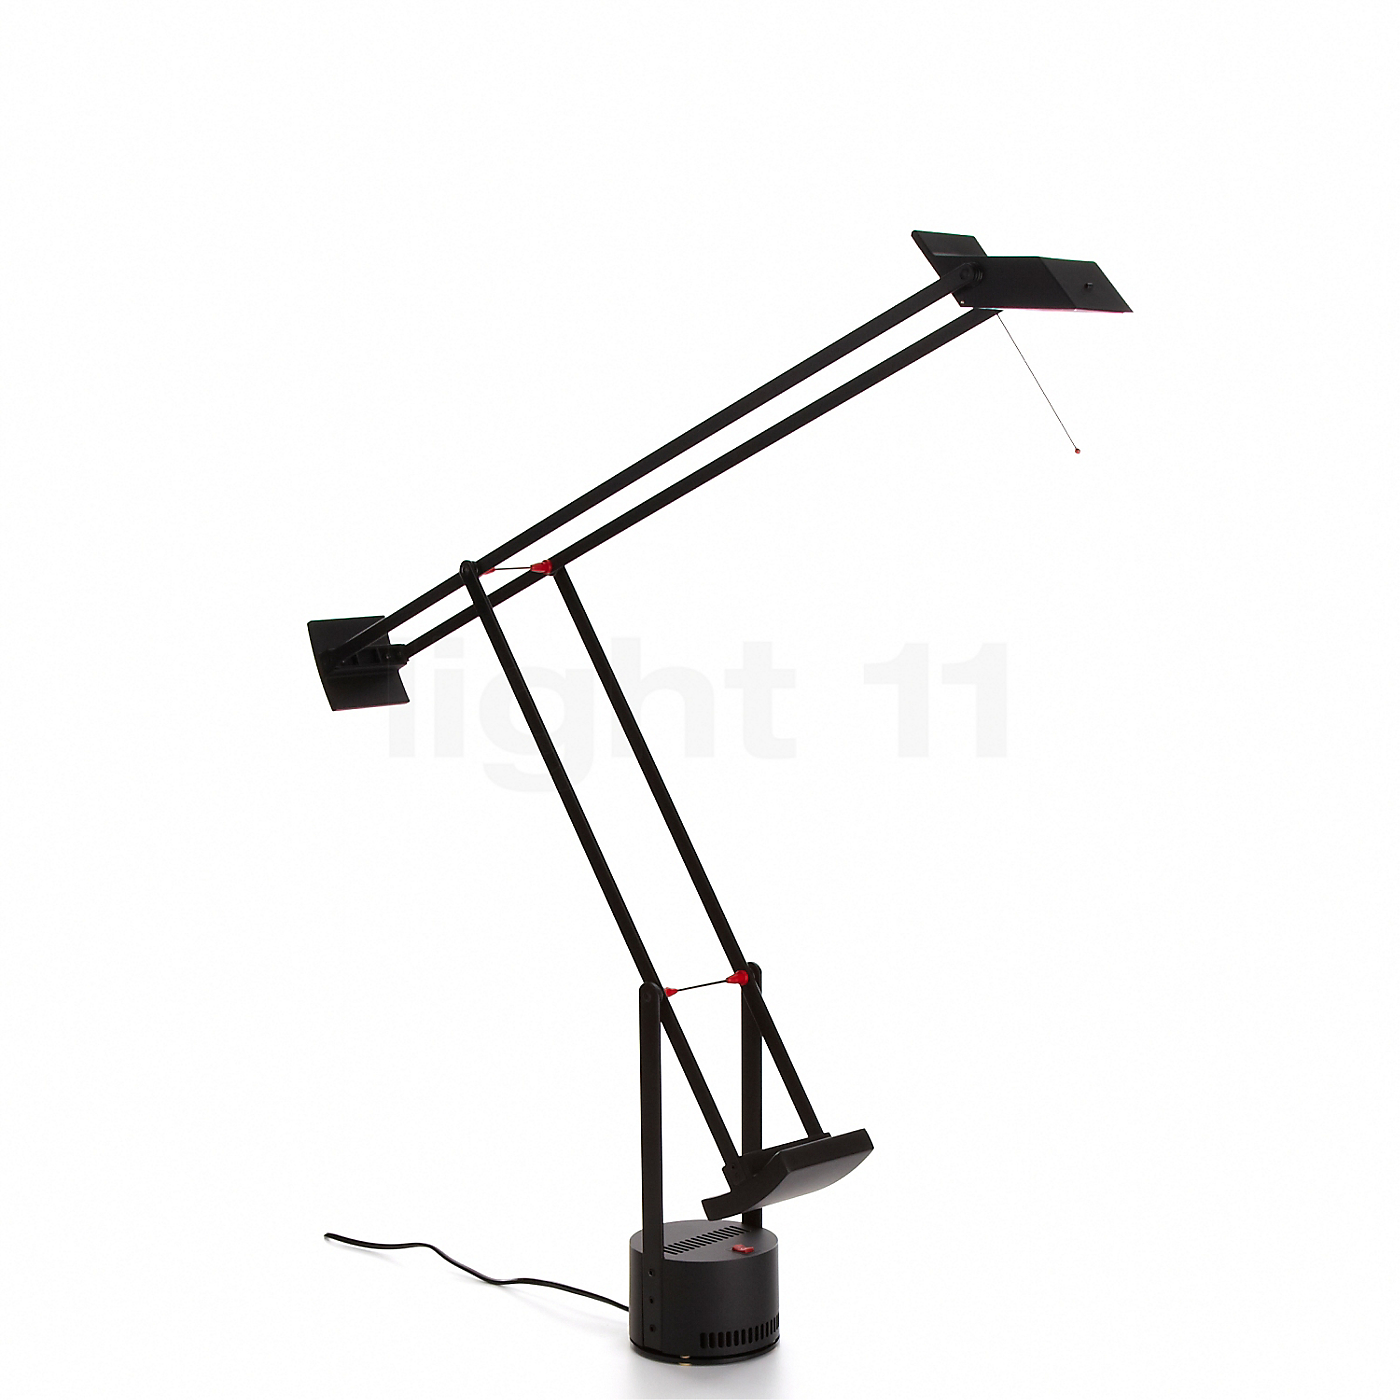 Tizio desk lamp | Warisan Lighting:tizio desk lamp photo - 1,Lighting